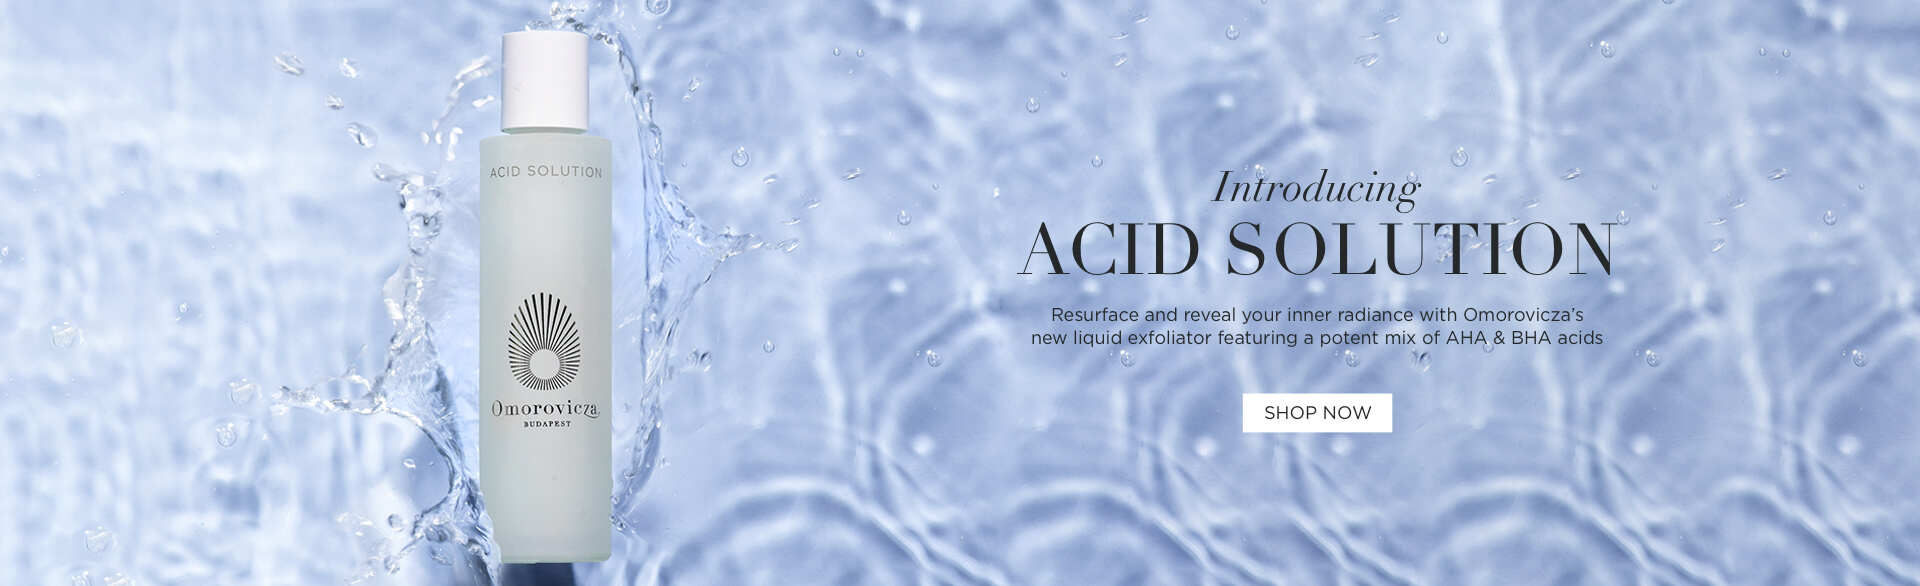 Introducting Acid Solution - resurface and reveal your inner radiance with Acid Solution